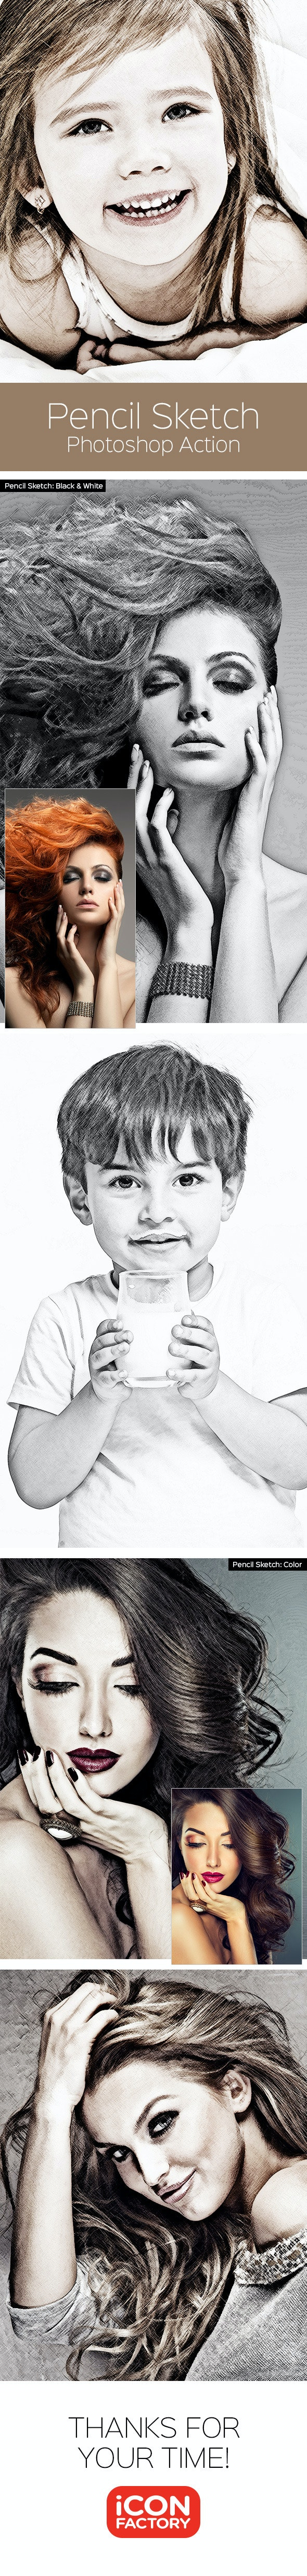 Pencil Sketch - Photoshop Action - Photo Effects Actions